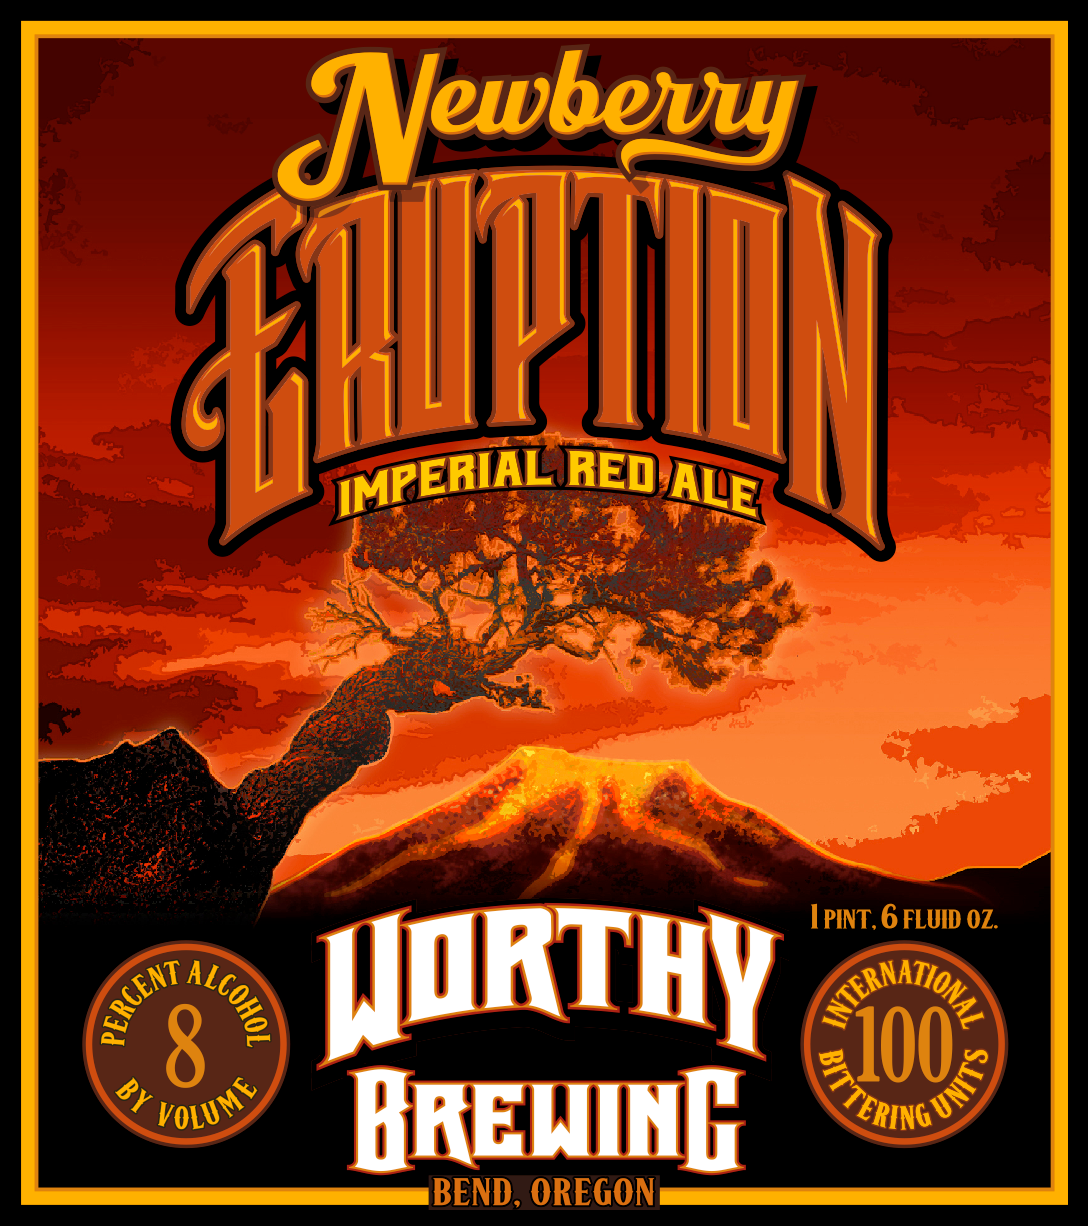 Worthy Newberry Eruption Imperial Red Ale